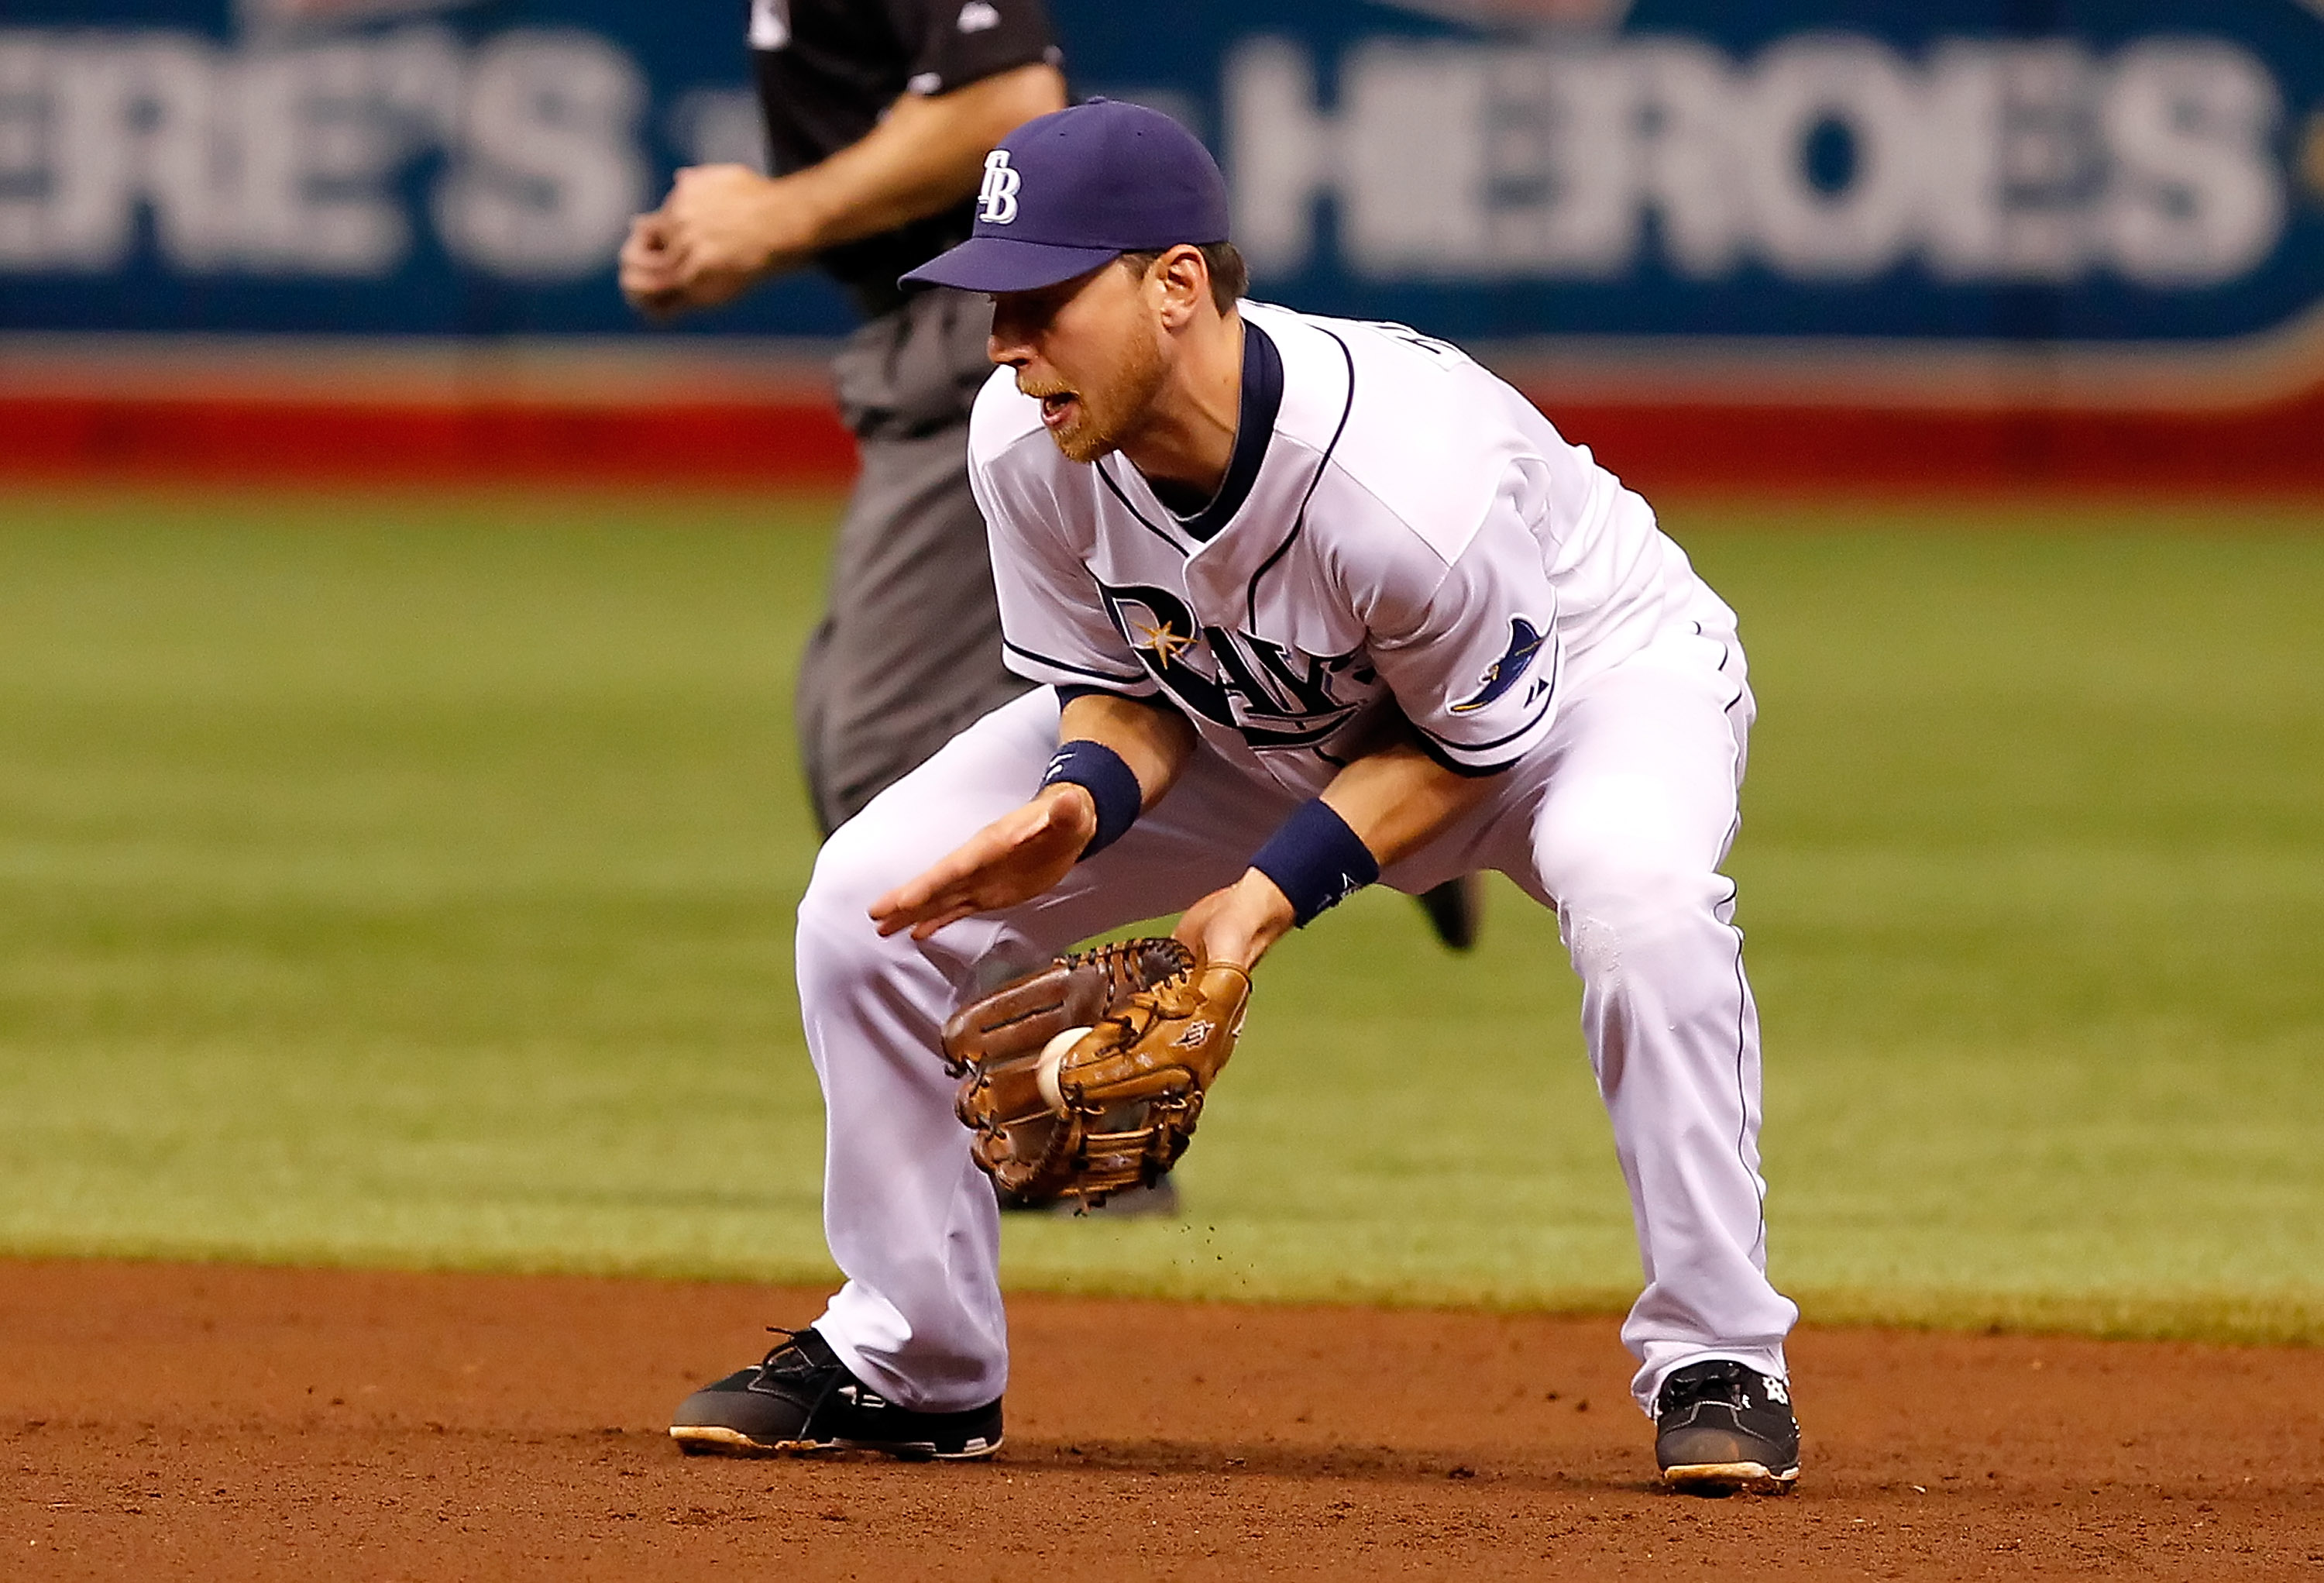 ST. PETERSBURG, FL - MAY 31:  Infielder Ben Zobrist #18 of the Tampa Bay Rays fields a ground ball against the Texas Rangers during the game at Tropicana Field on May 31, 2011 in St. Petersburg, Florida.  (Photo by J. Meric/Getty Images)